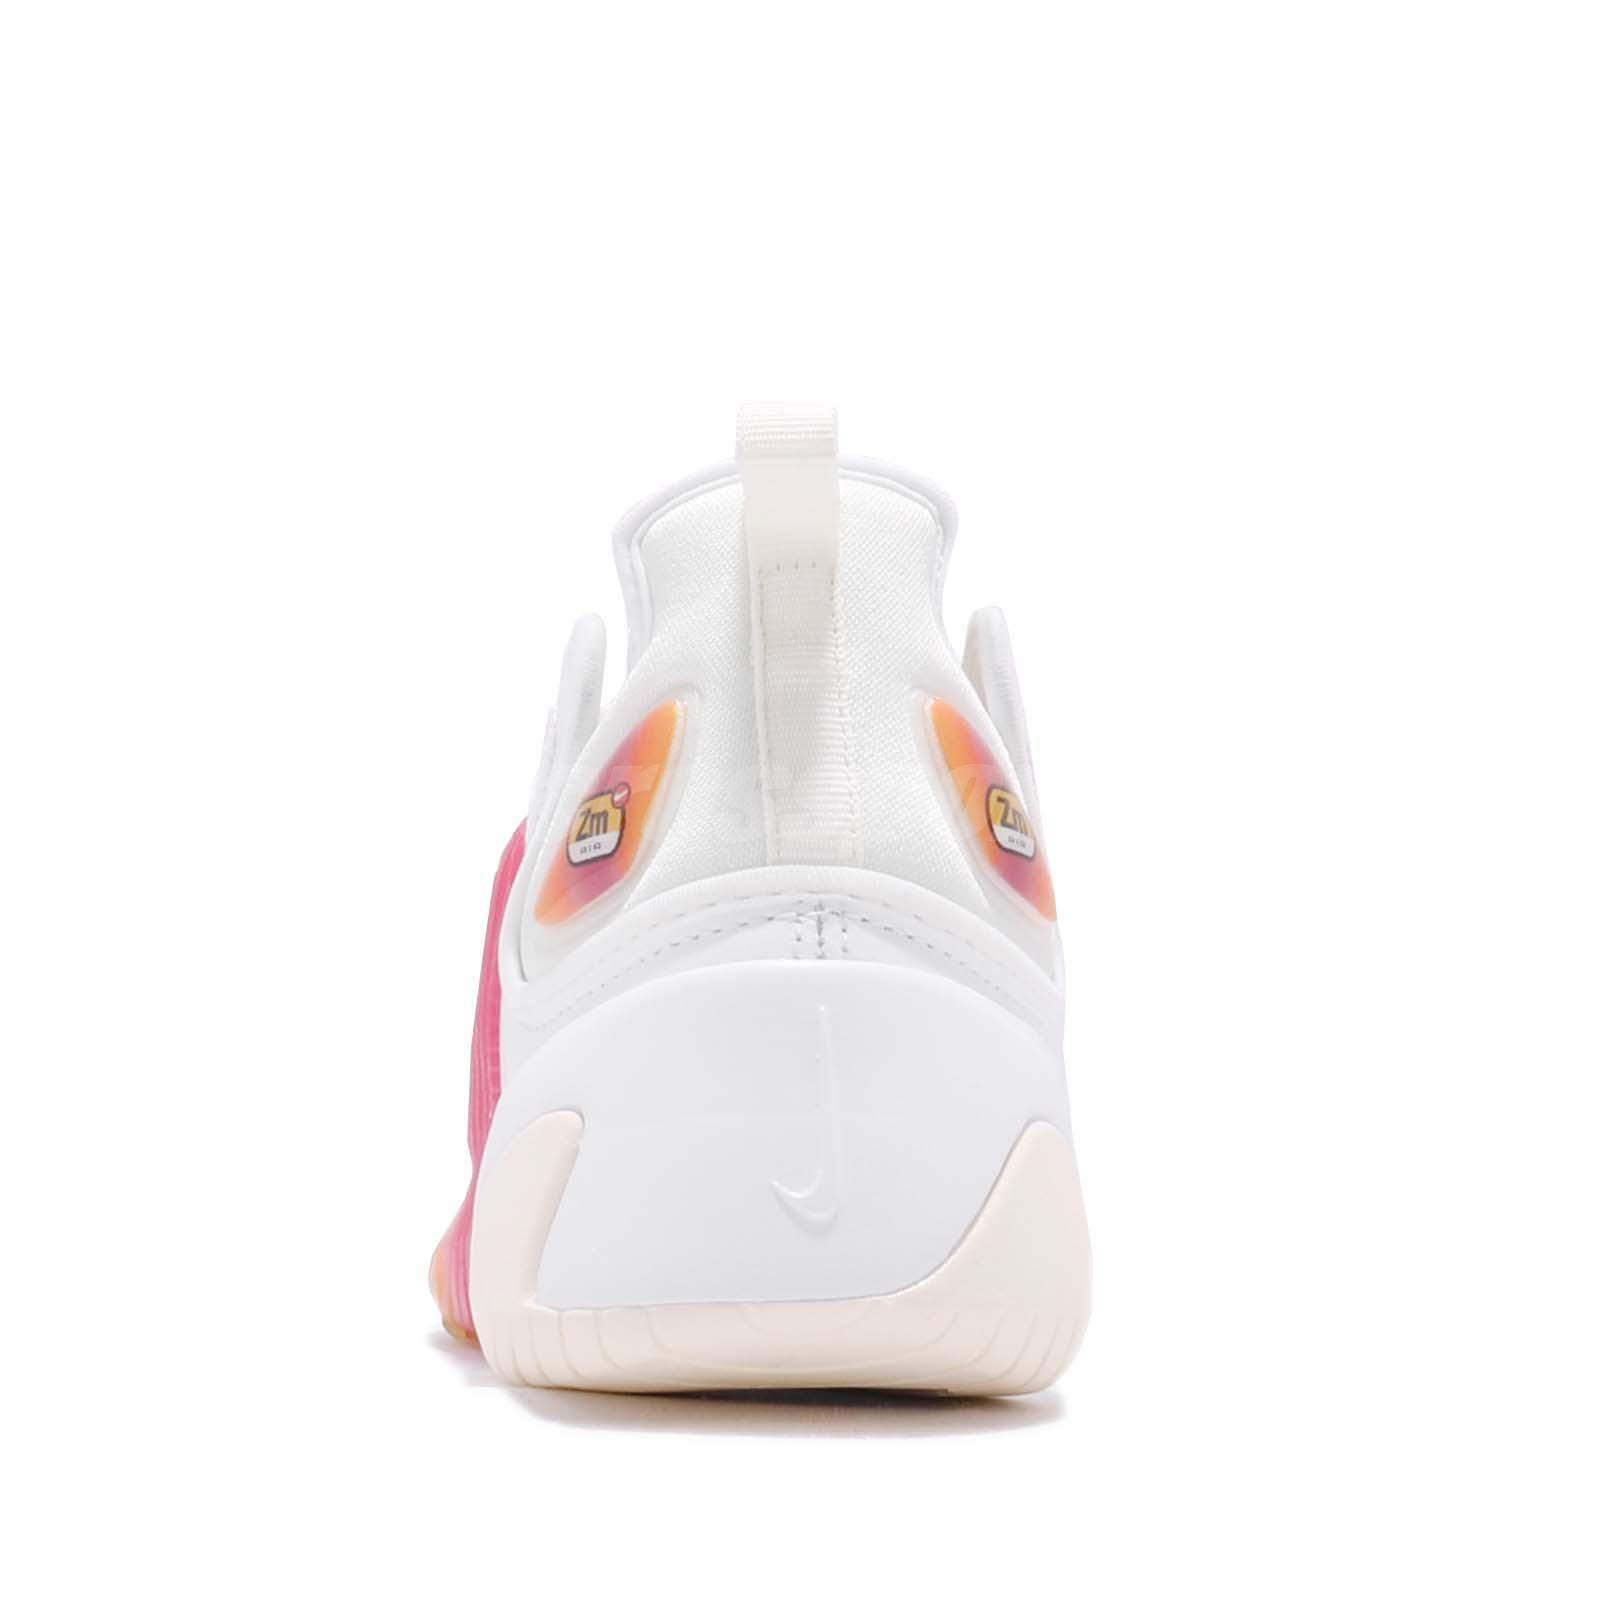 separation shoes d5137 c8ae4 Nike Wmns Zoom 2K White Rush Pink Sail Womens Running Shoes Sneakers ...